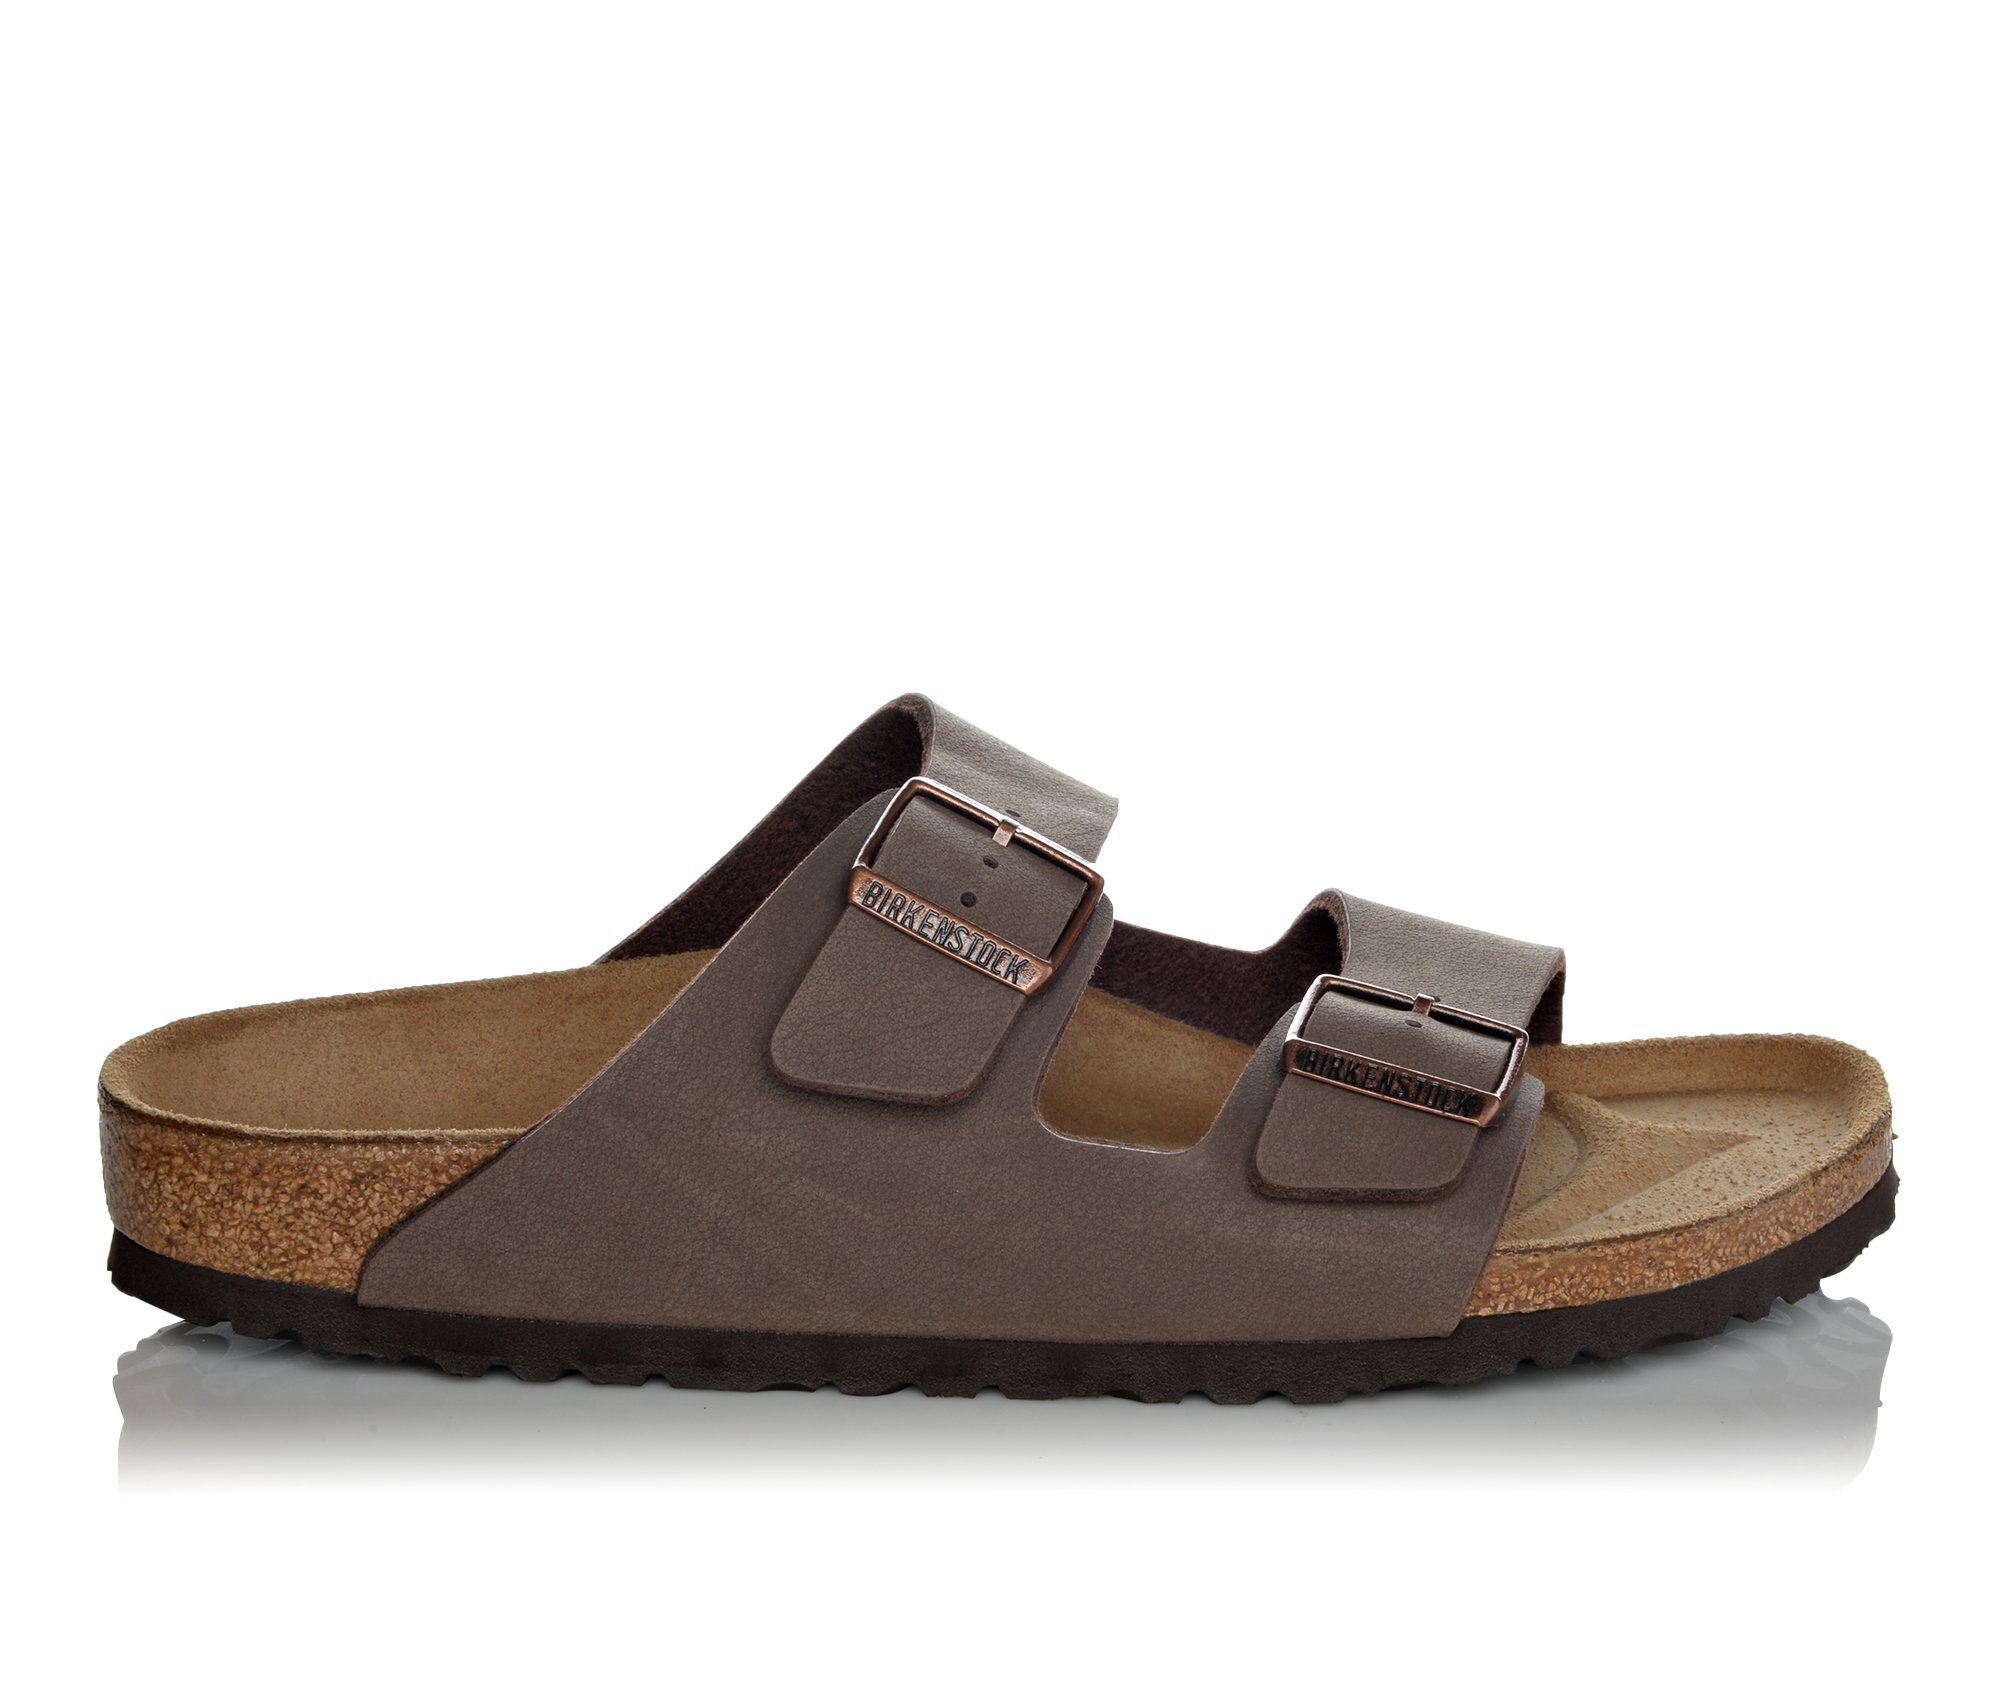 buy new series Men's Birkenstock Arizona 2 Buckle Outdoor Sandals Mocha